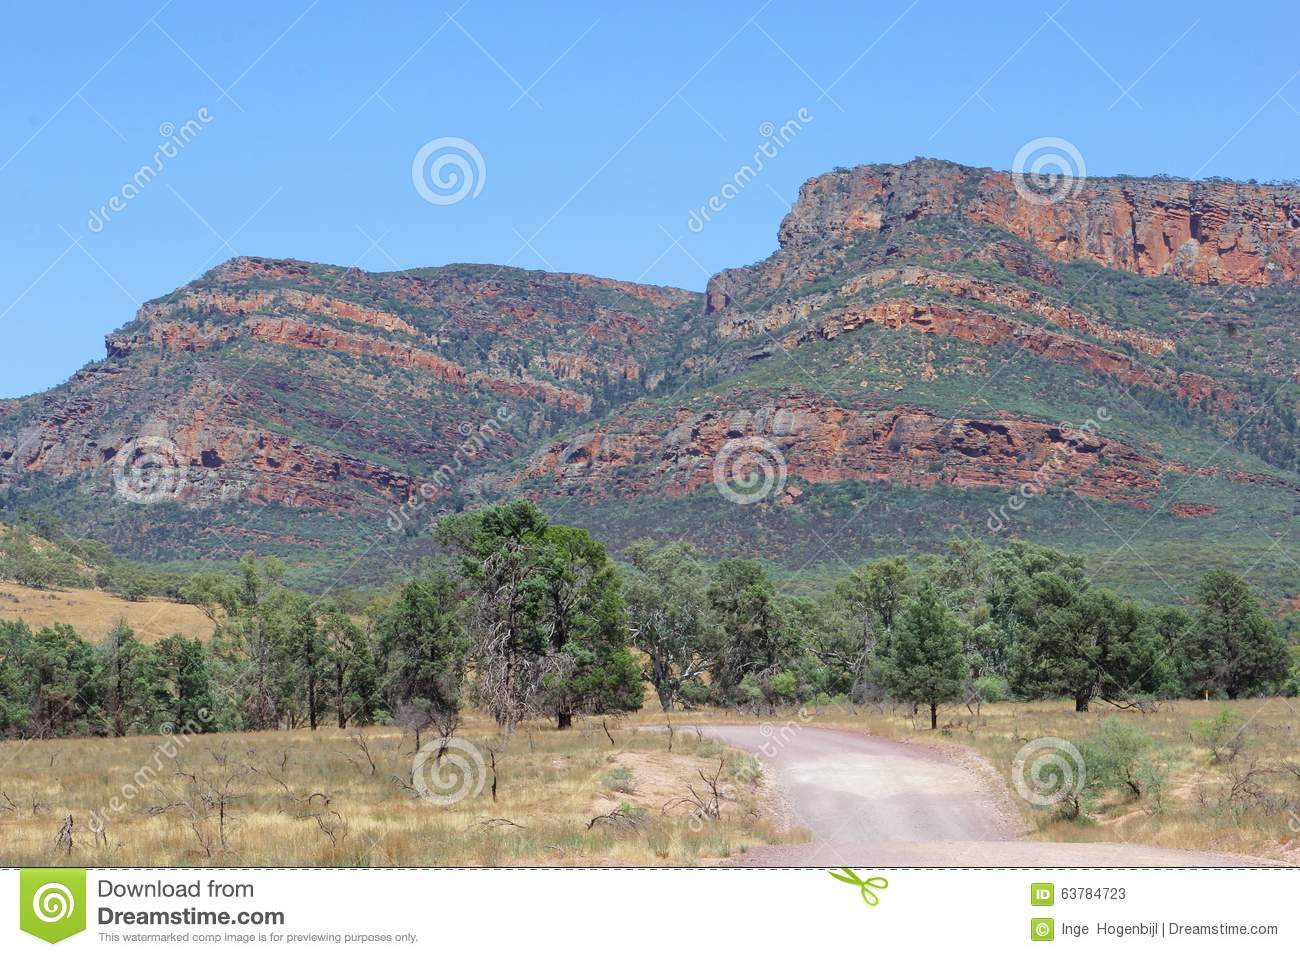 Flinders Ranges clipart #11, Download drawings